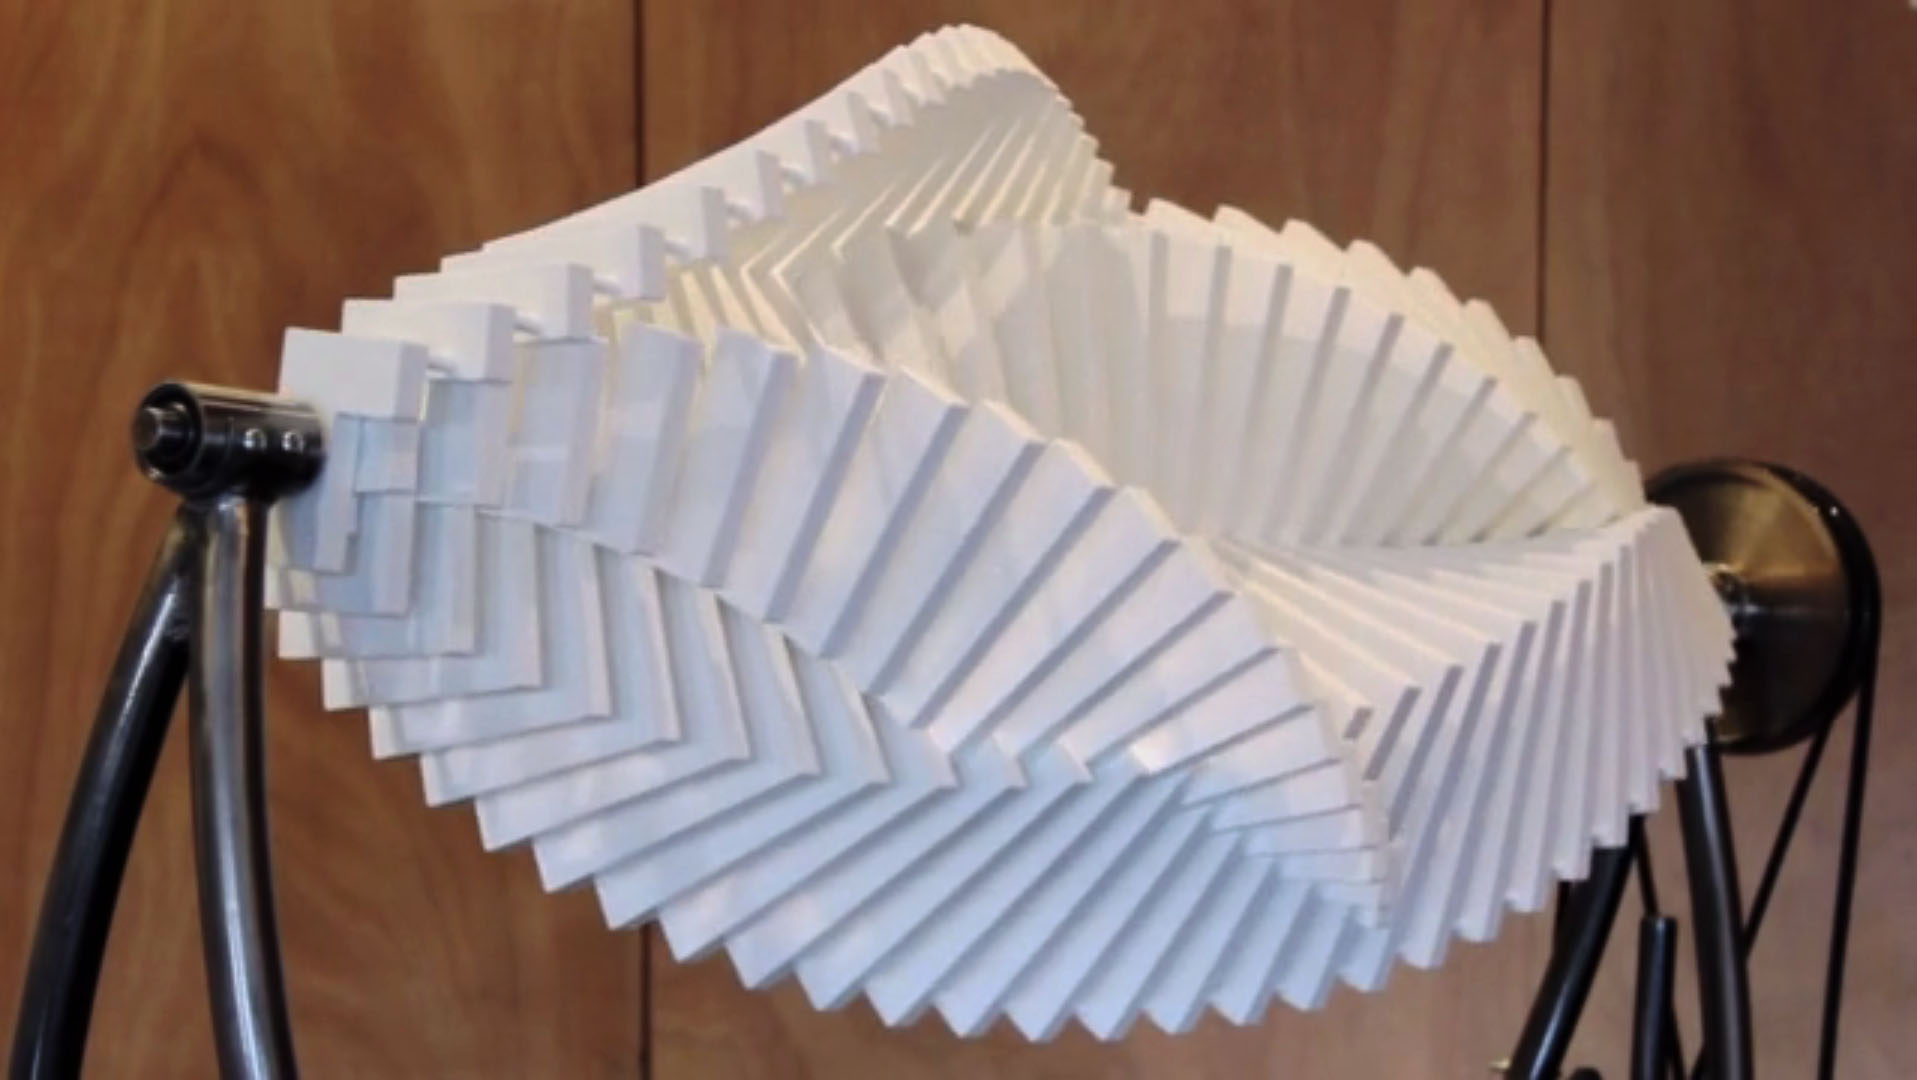 Hypnotizing Sculptures Are Like Real Life Optical Illusions